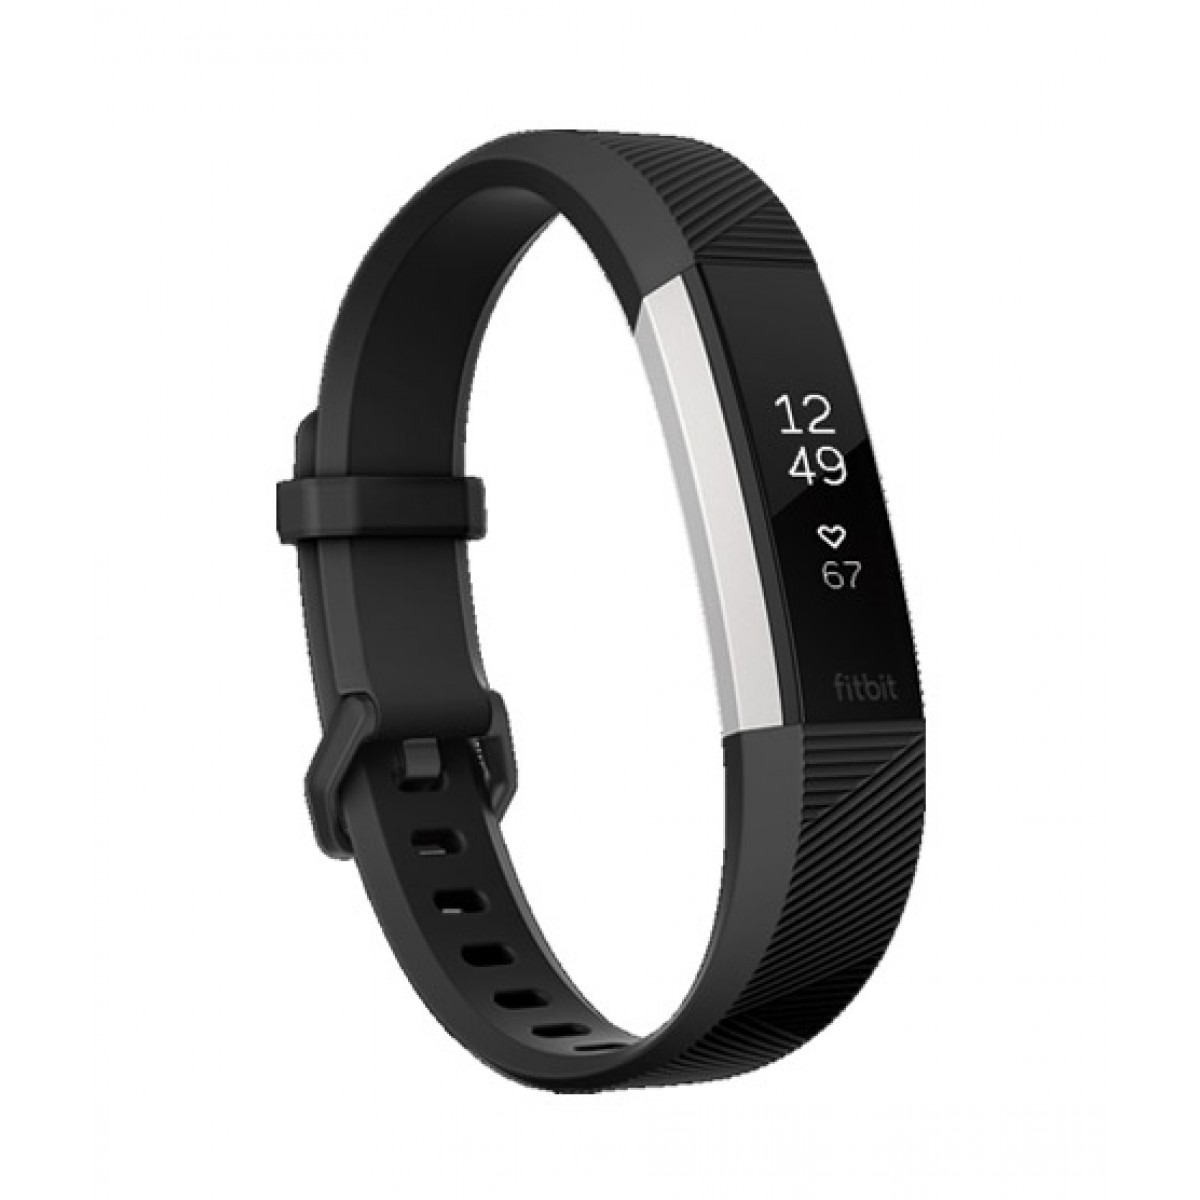 Fitbit Alta HR Fitness Wristband Price in Pakistan | Buy Fitbit Alta HR  Fitness Wristband Black | iShopping.pk